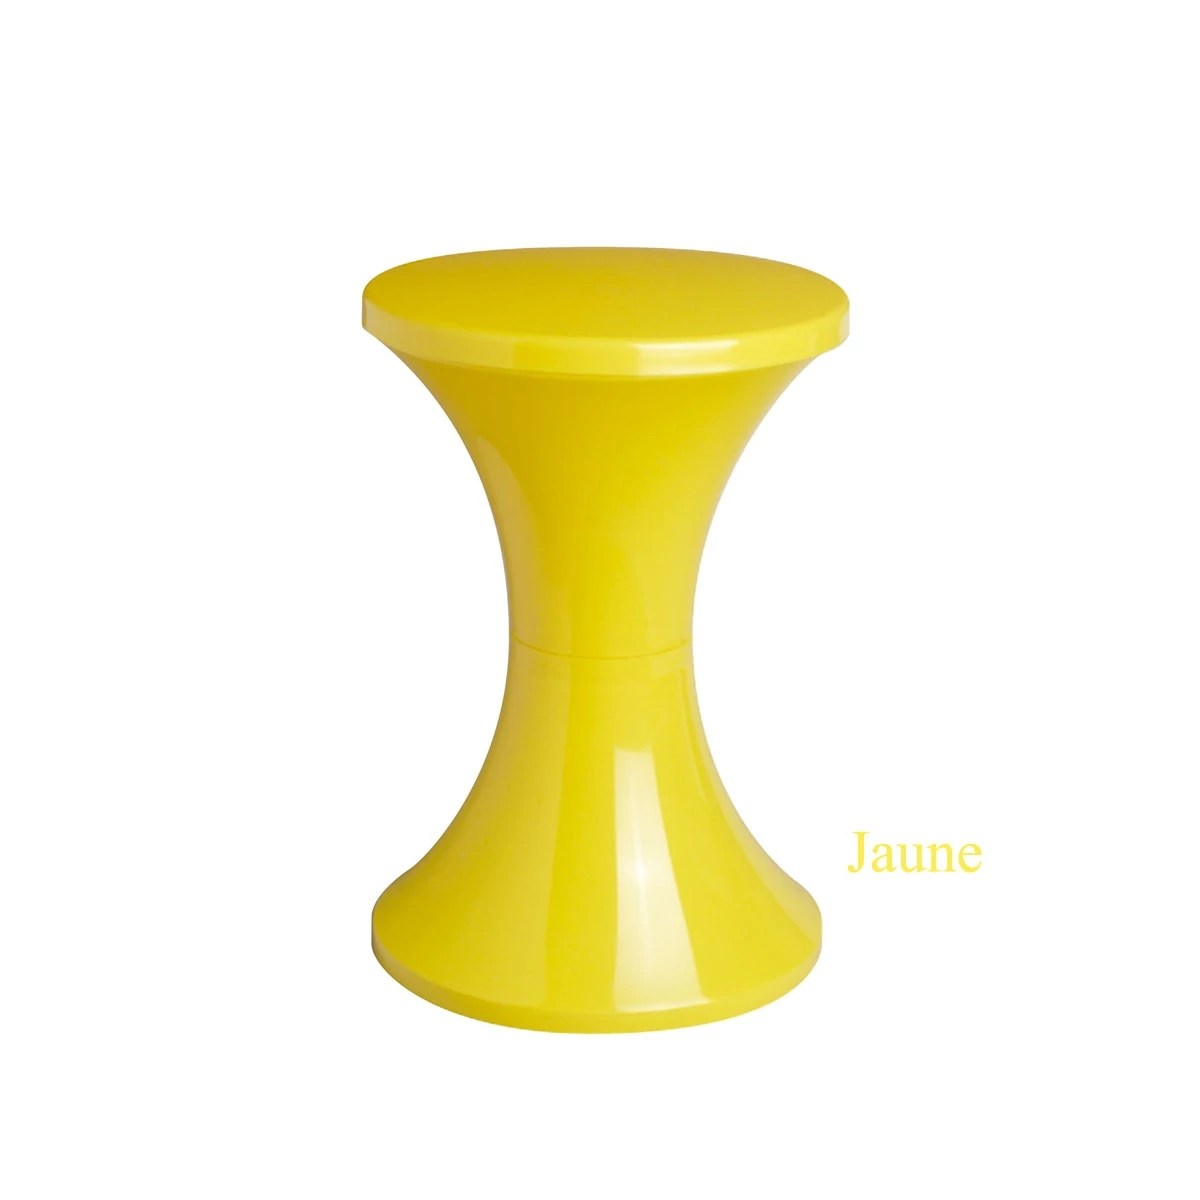 Idea Tabourets Stamp Mobilier Stamp Mobilier Actuel Stamp Edition